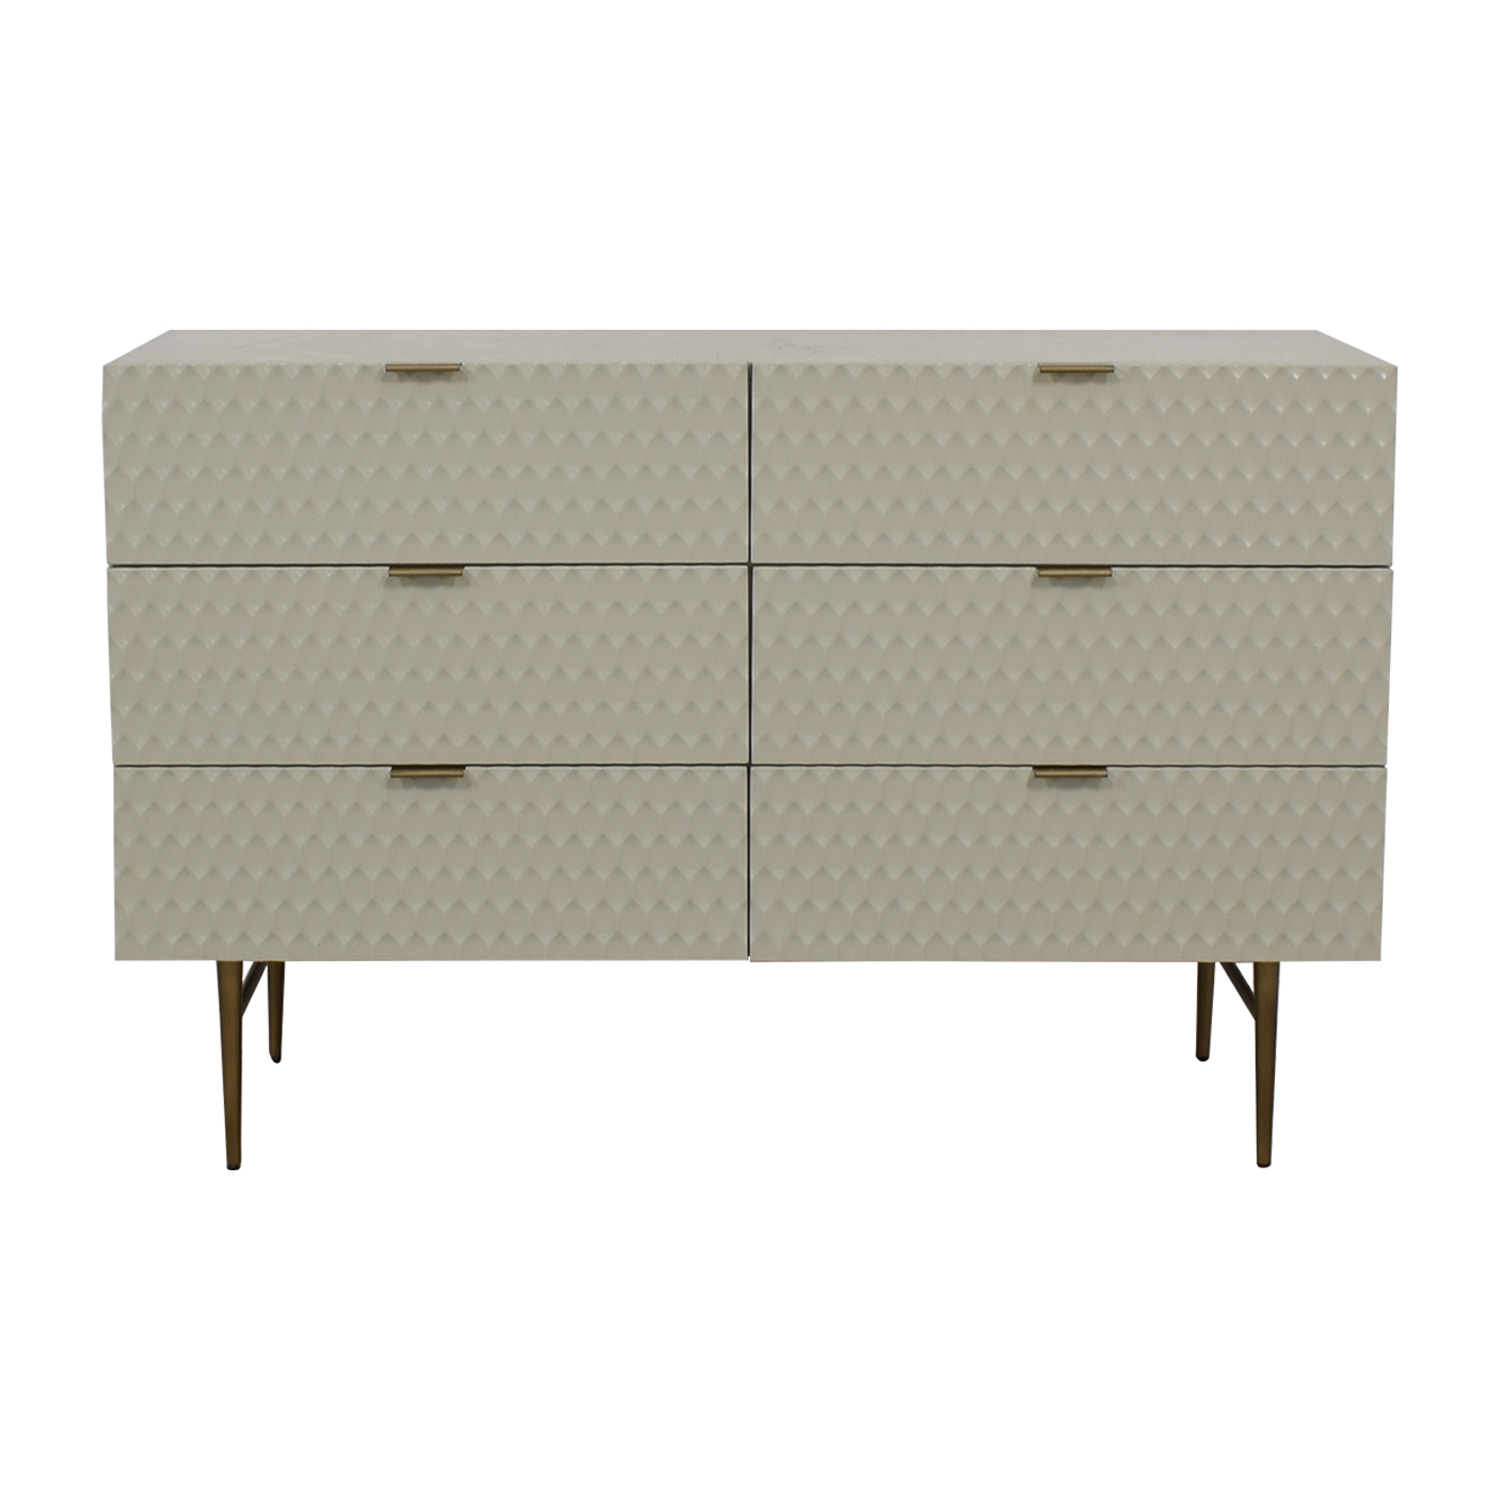 West Elm West Elm Audrey Six-Drawer Dresser price